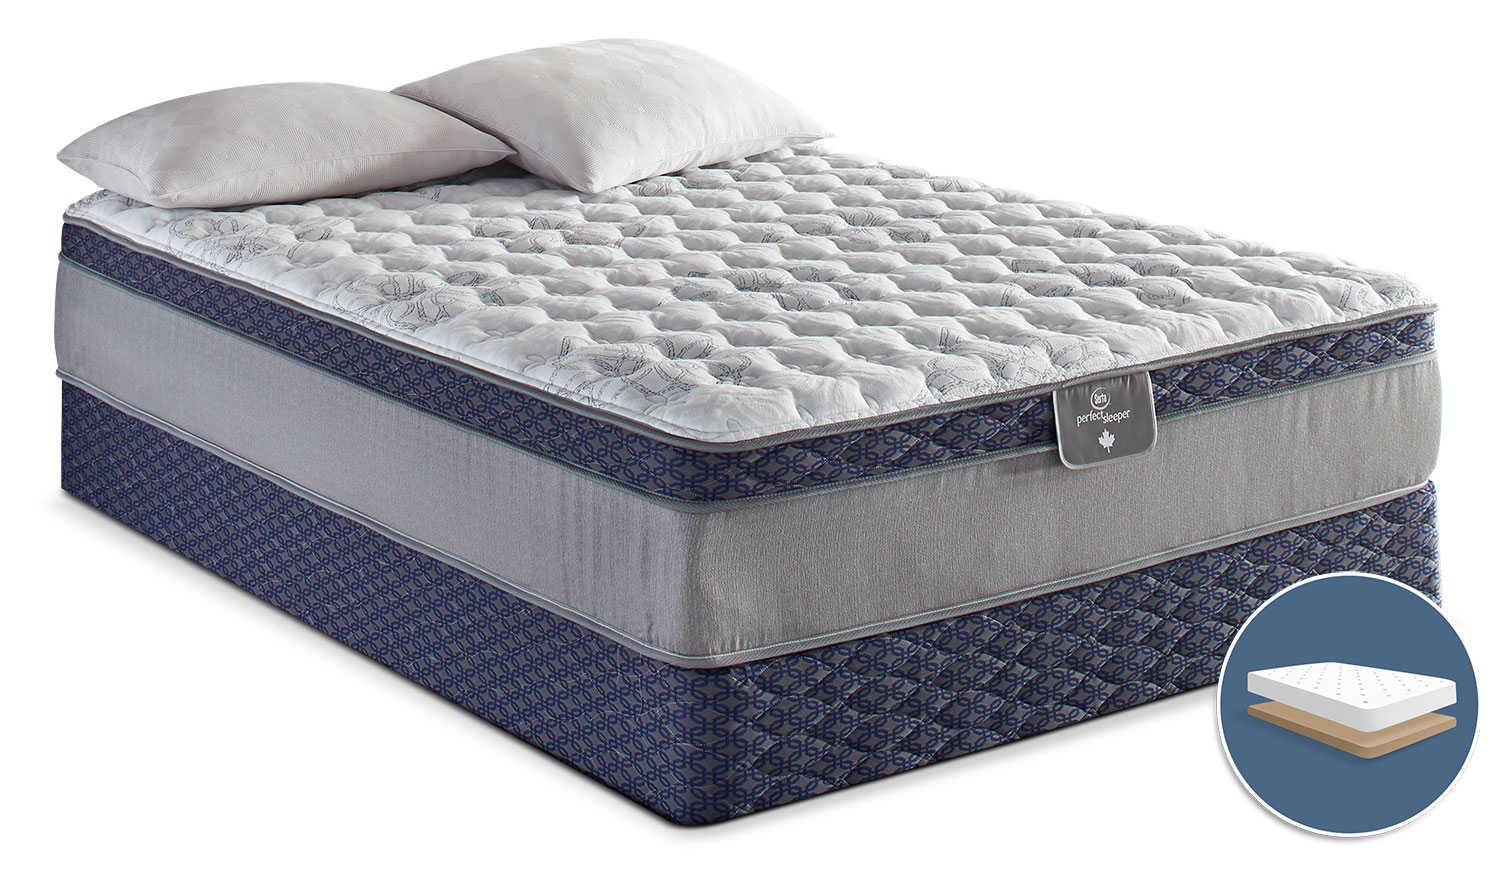 Serta Perfect Sleeper 85th Anniversary Euro-Top Firm Low-Profile Queen Mattress Set